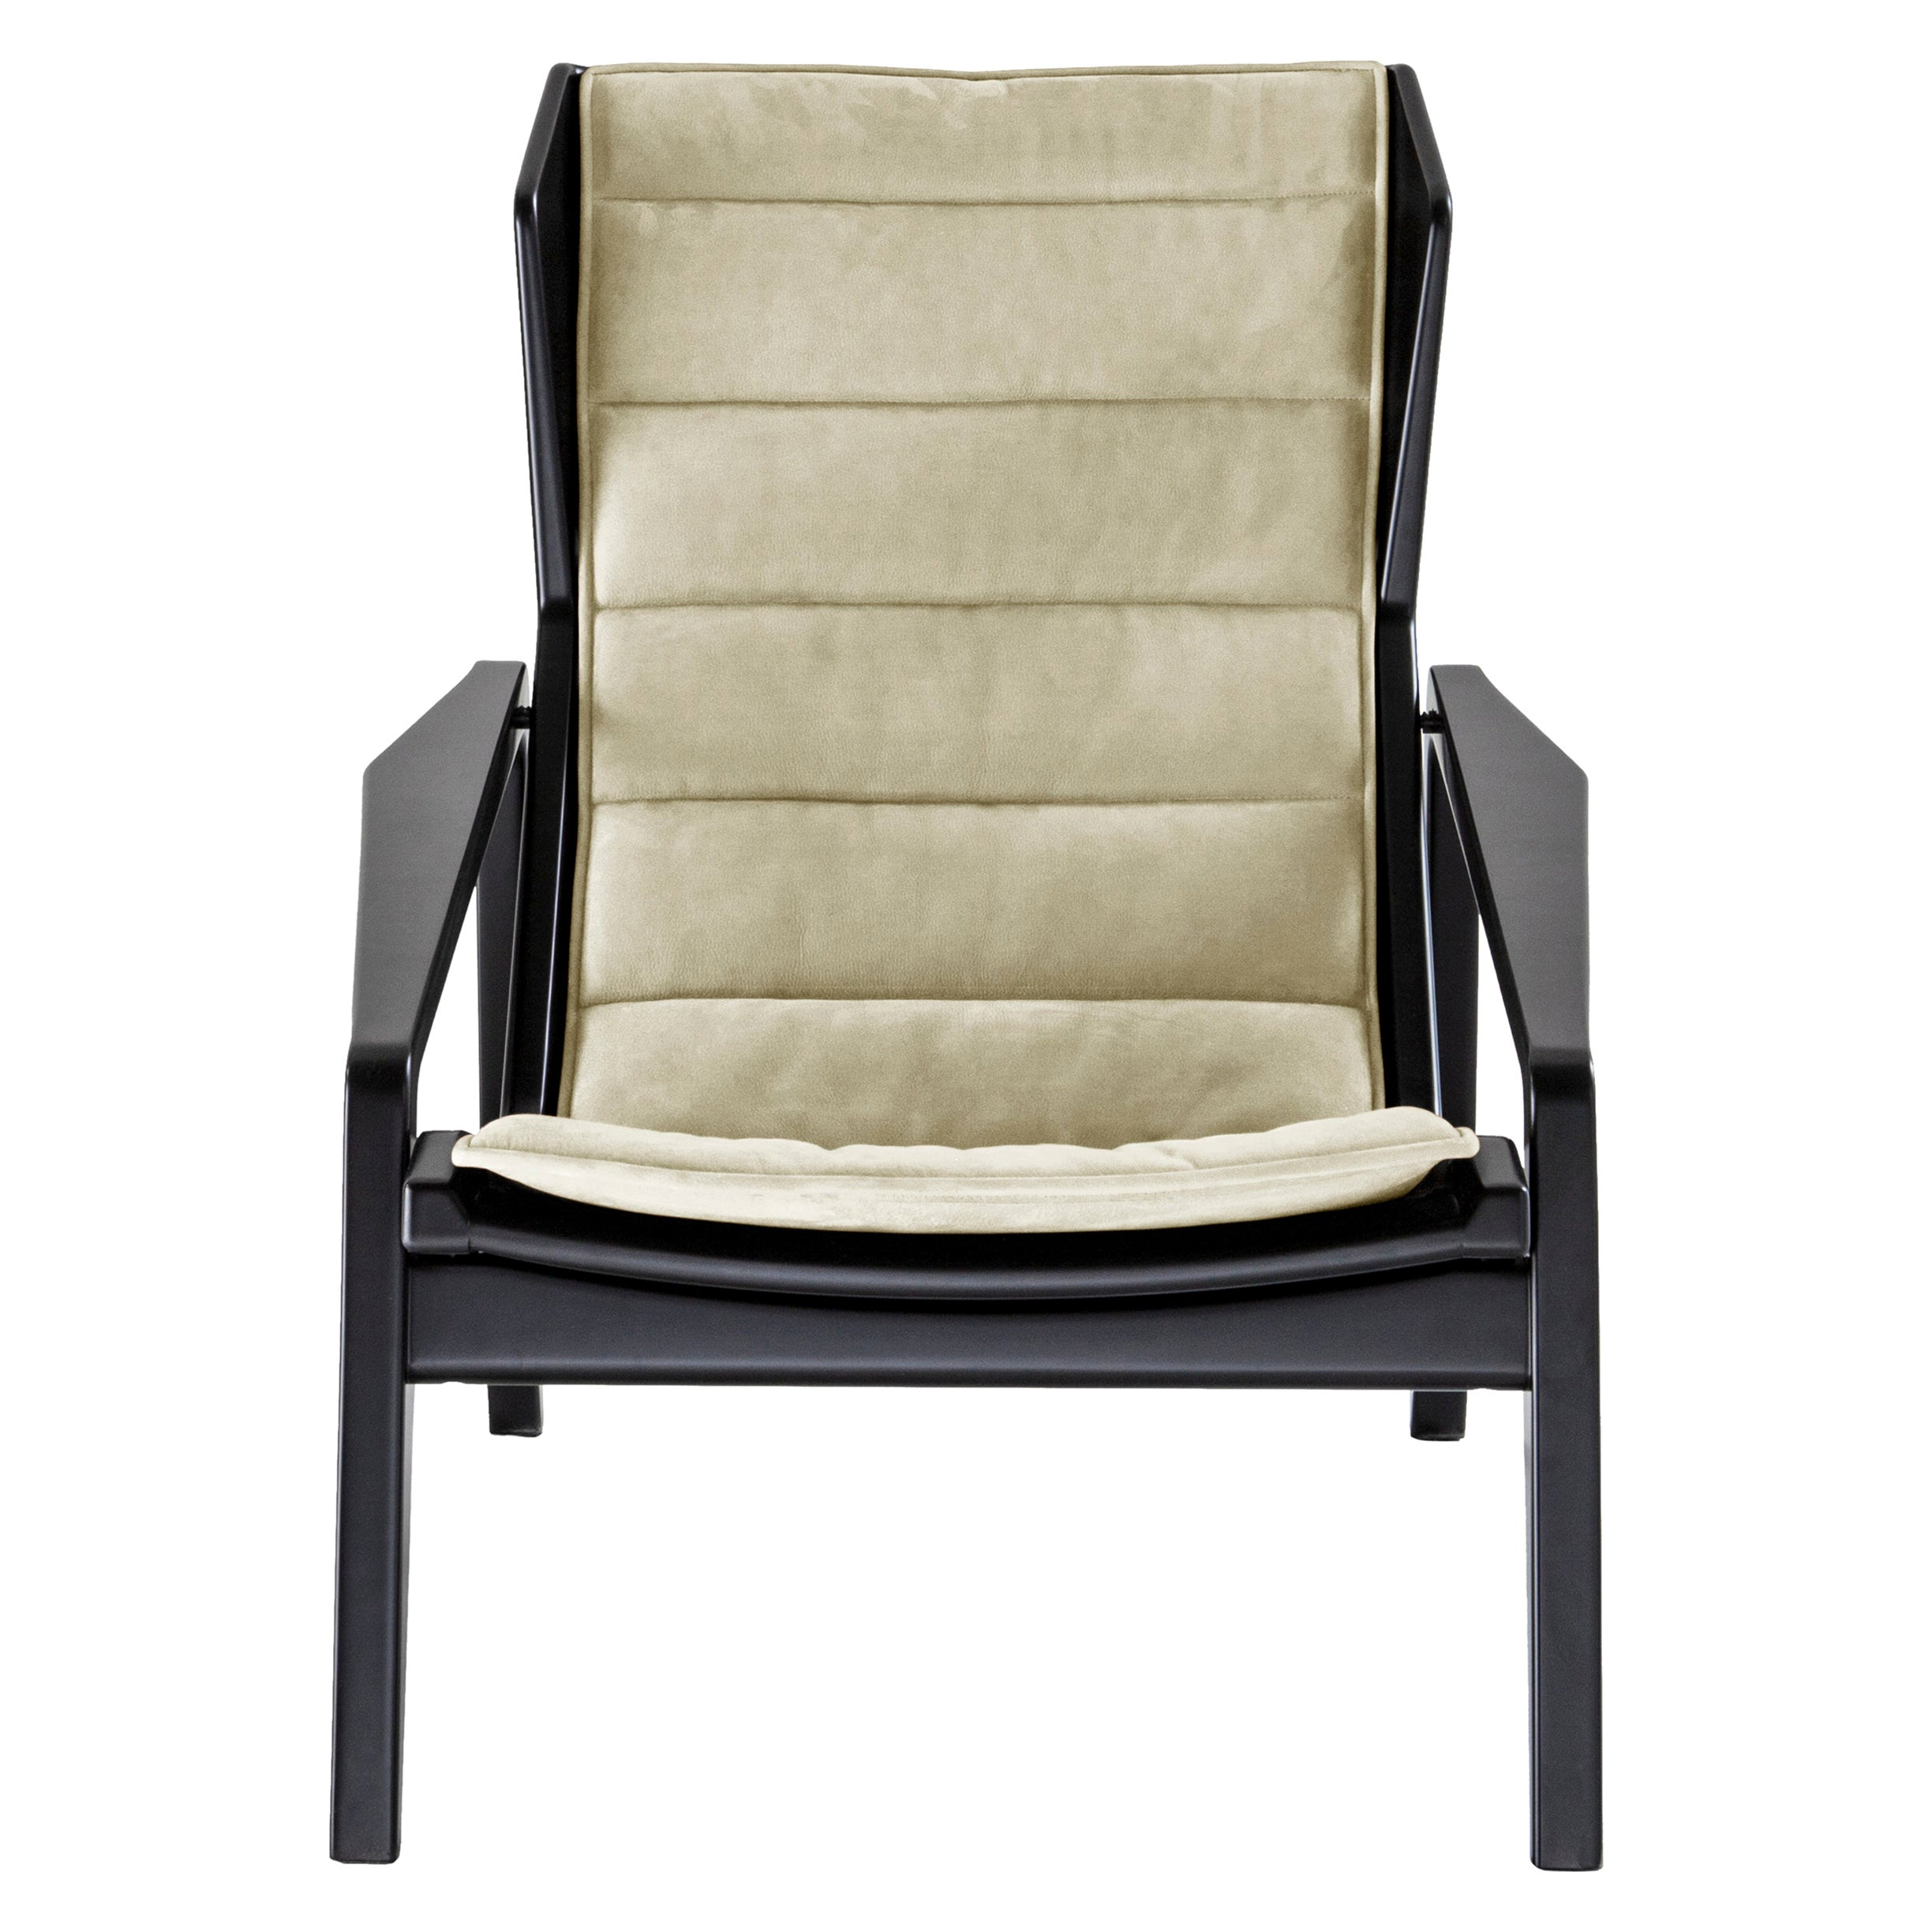 Molteni&C D.156.3 Armchair in Glossy Black Lacquered Wood & Velvet by Gio Ponti